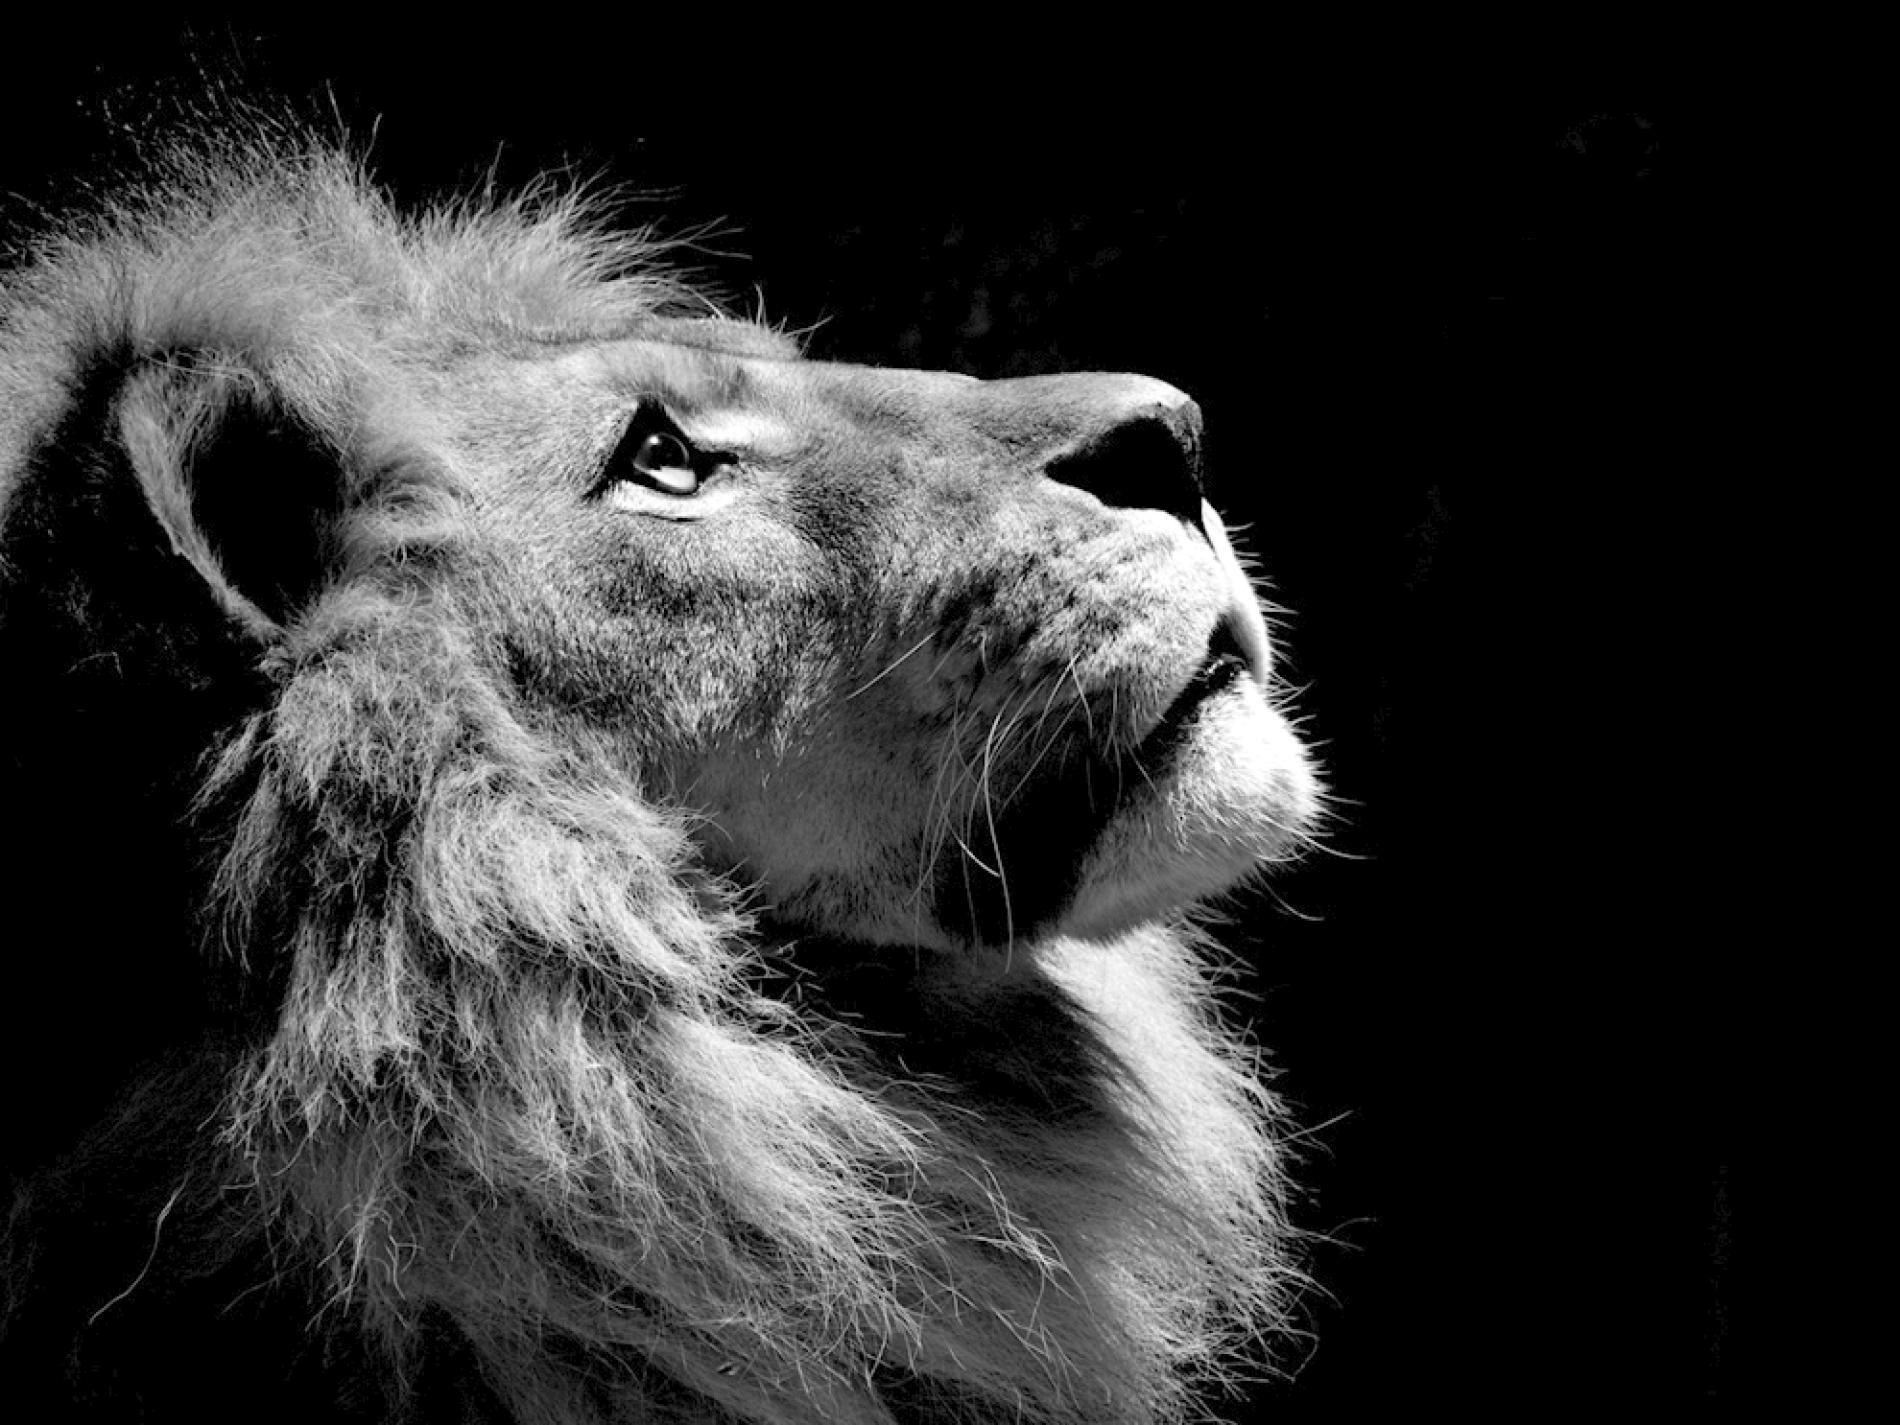 Lion Profile Photo Animal Wallpaper National Geographic Photo Of The Day Black And White Lion Lion Pictures Lion Photography